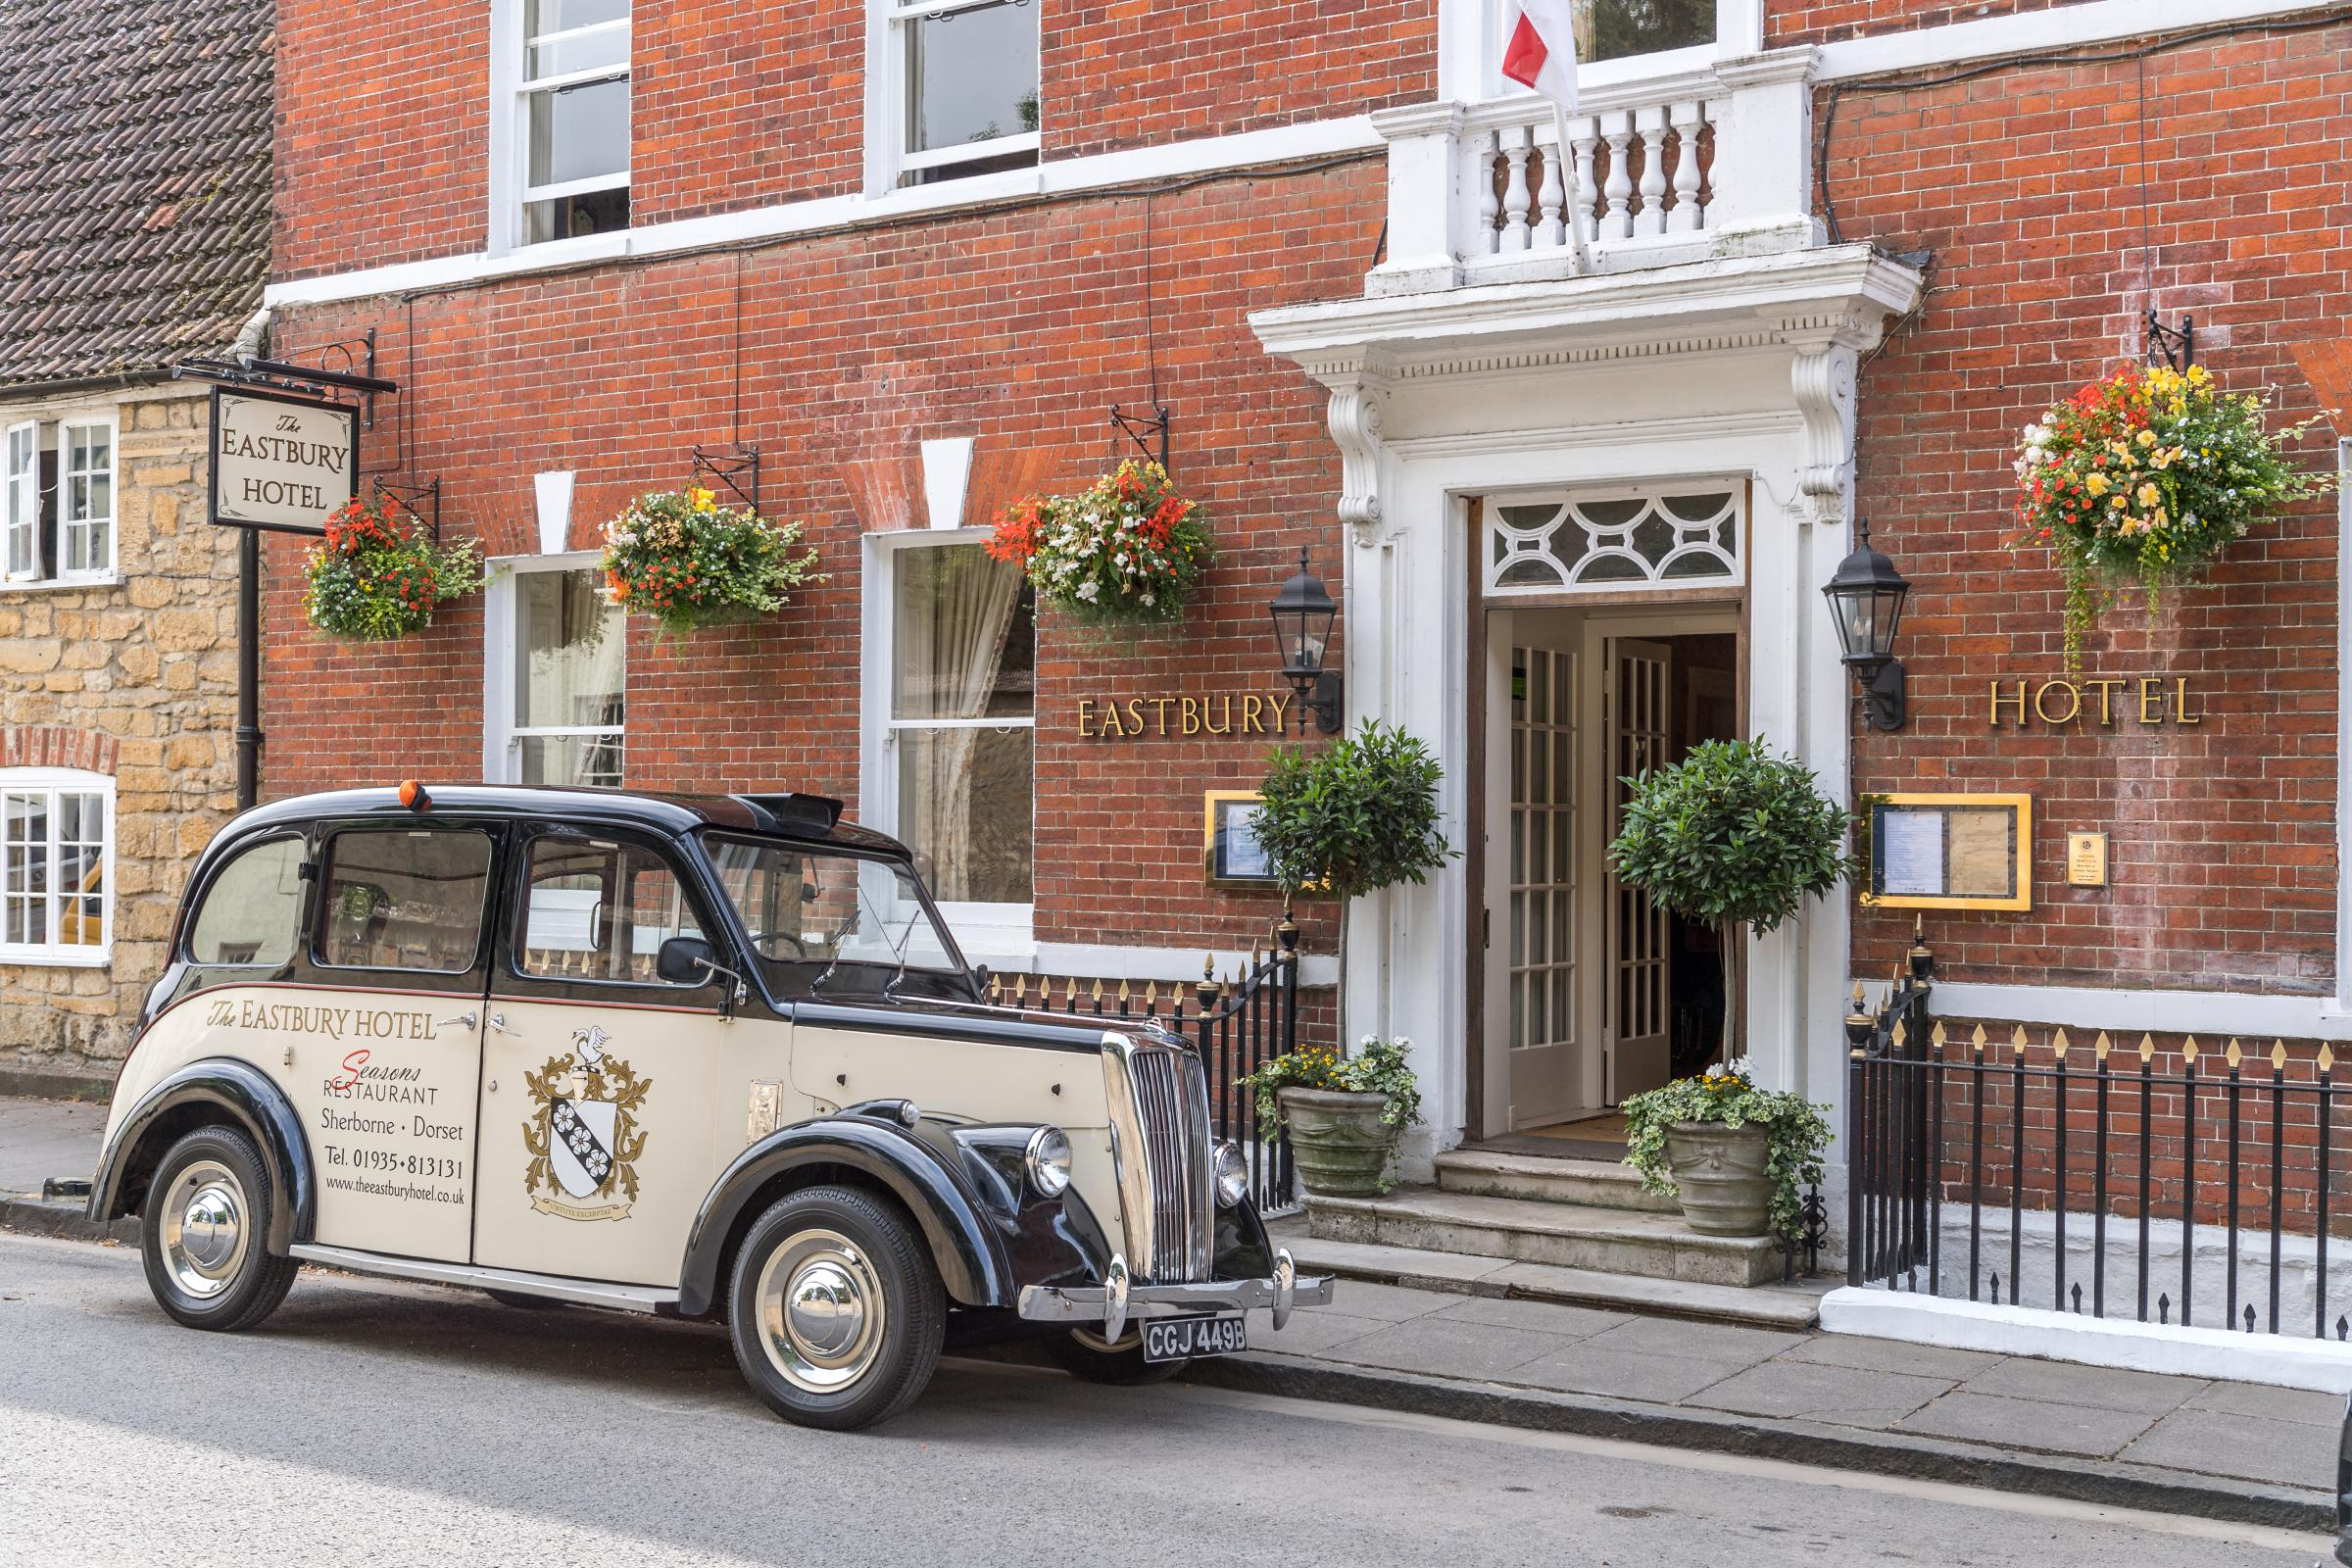 Hotel wins excellence award for its luxury - and value for money